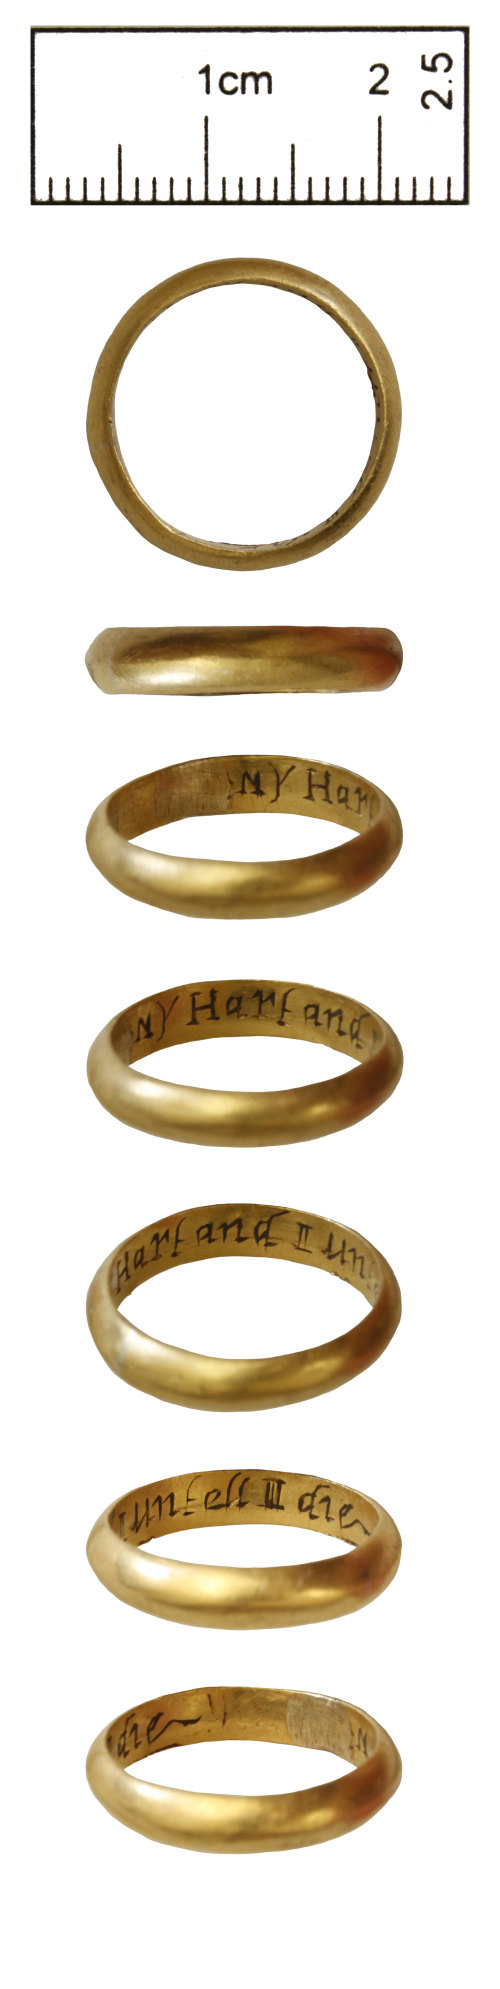 CAM-D38E7E: Post-Medieval gold posy finger-ring inscribed: MY Hart and I untell I die.